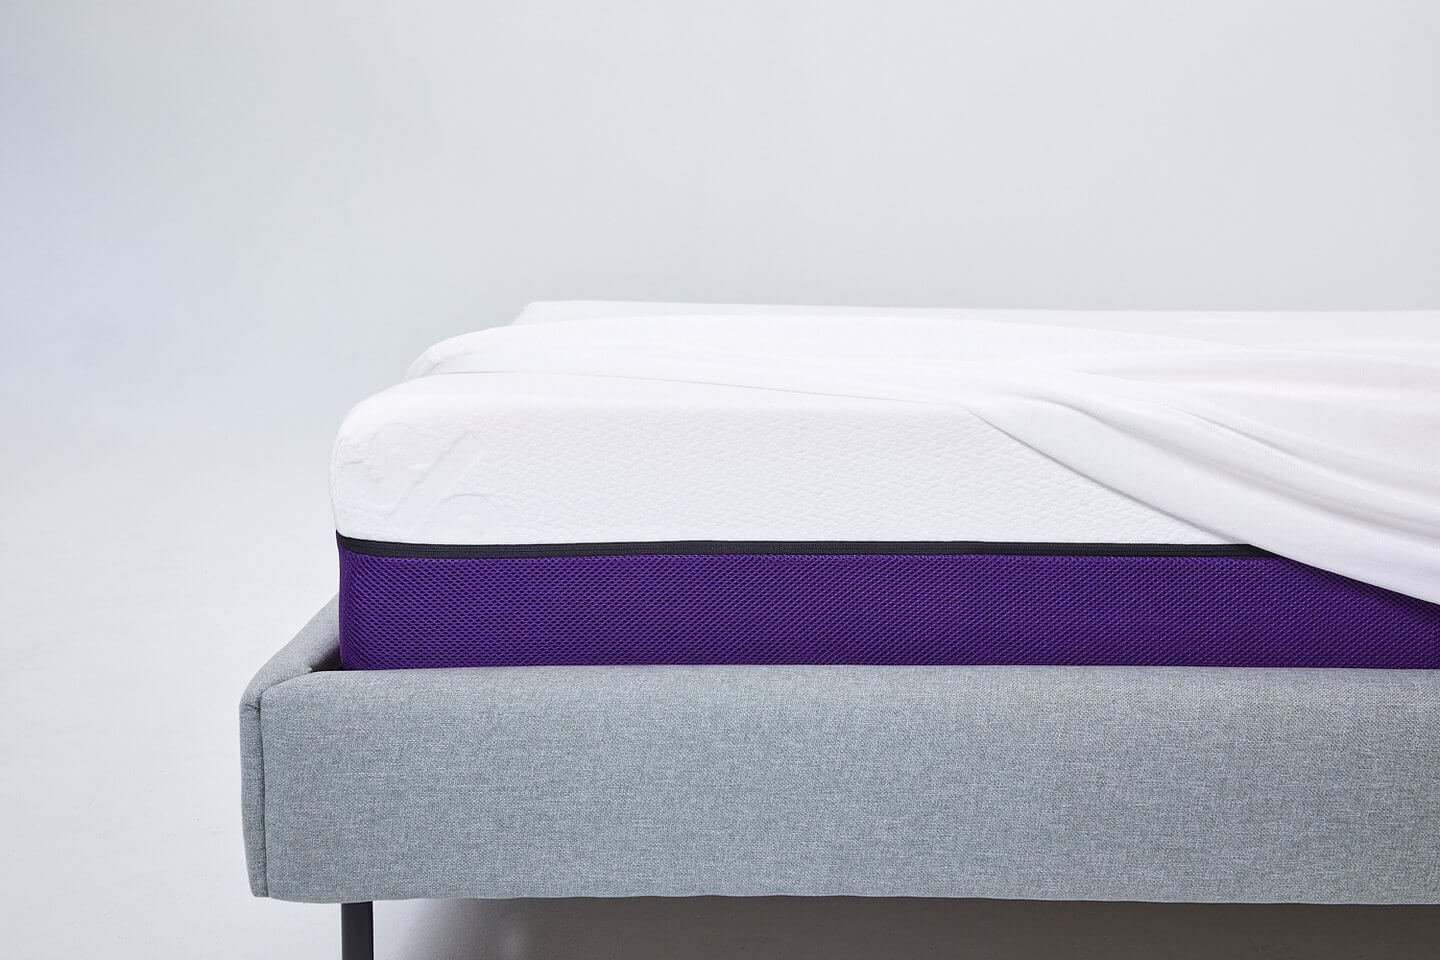 The Polysleep waterproof mattress protector unfolded from the corner of the Polysleep bed